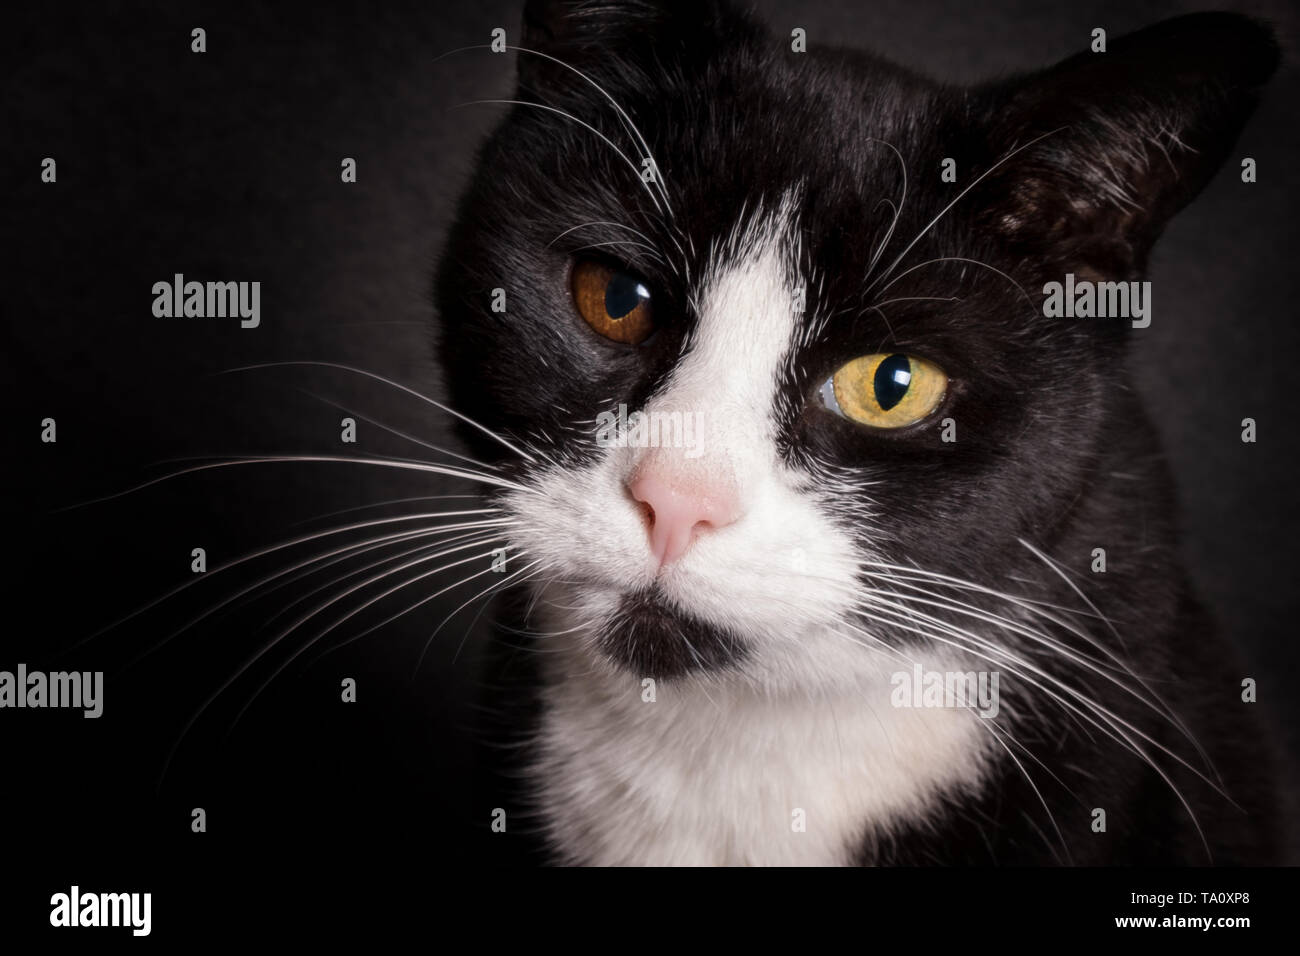 Portrait of black and white cat with bicolored eyes looking at camera Stock Photo